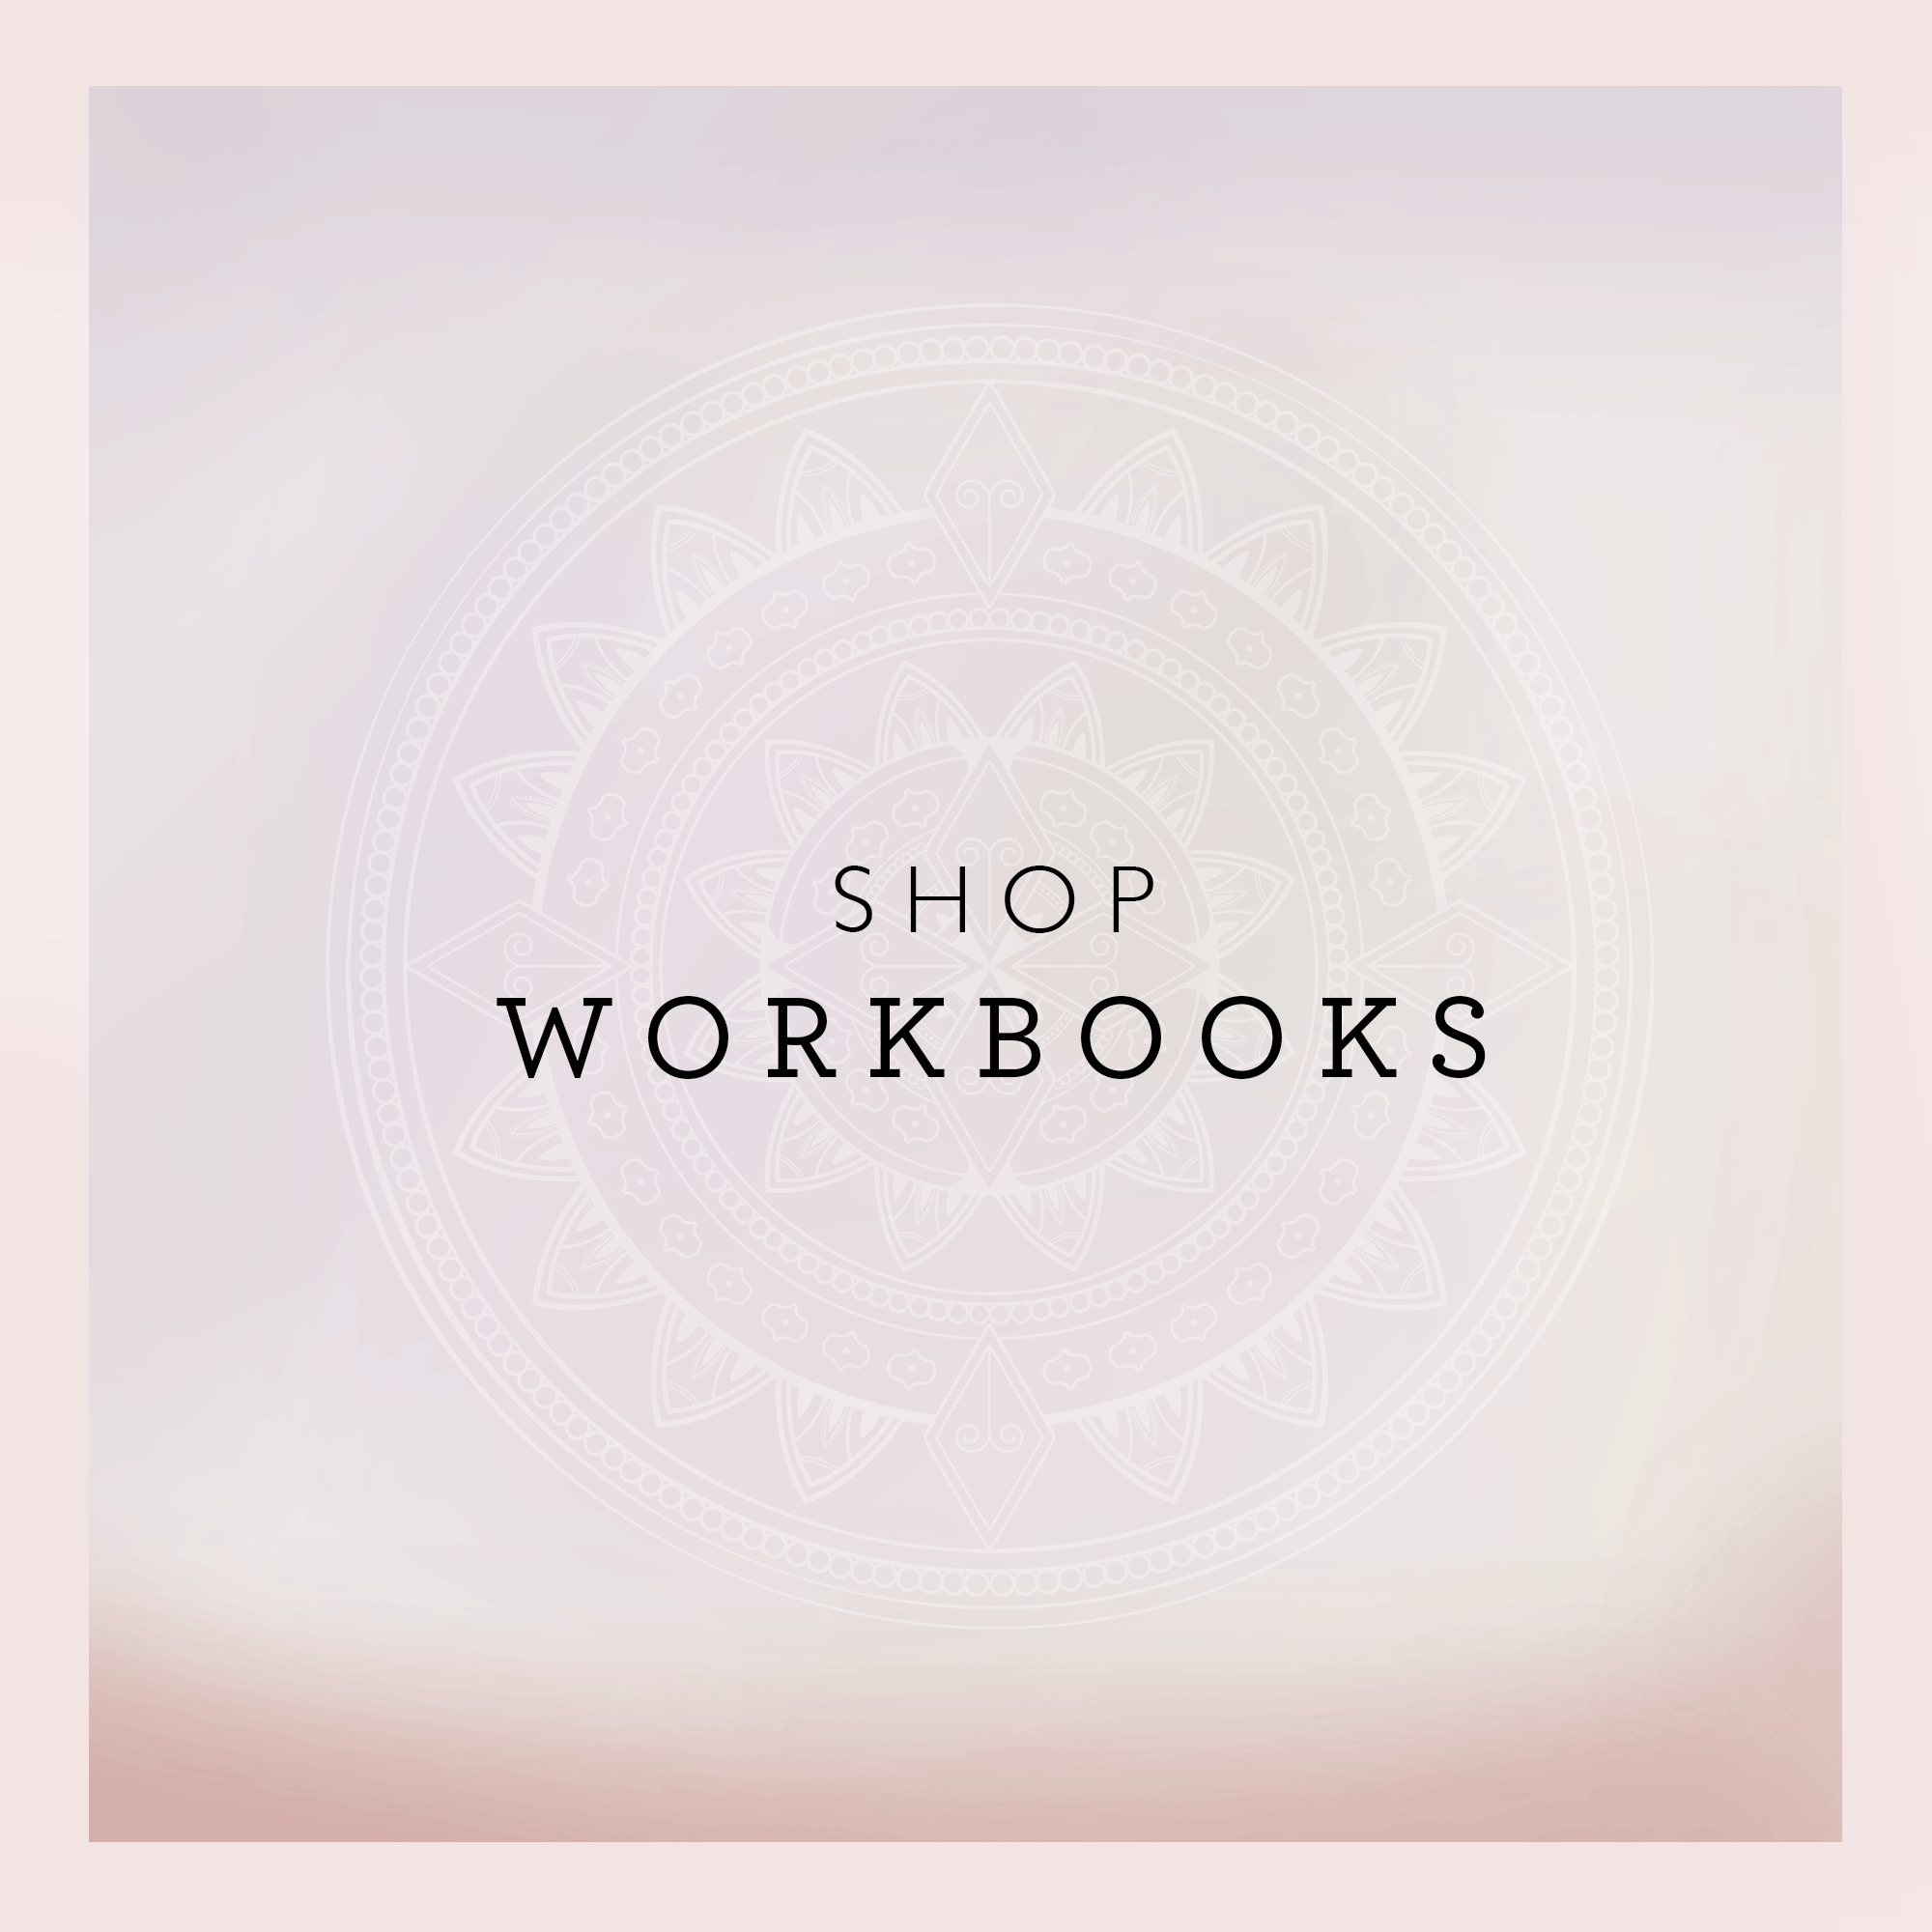 SHOP-WORKBOOKS-GRAPHIC-3